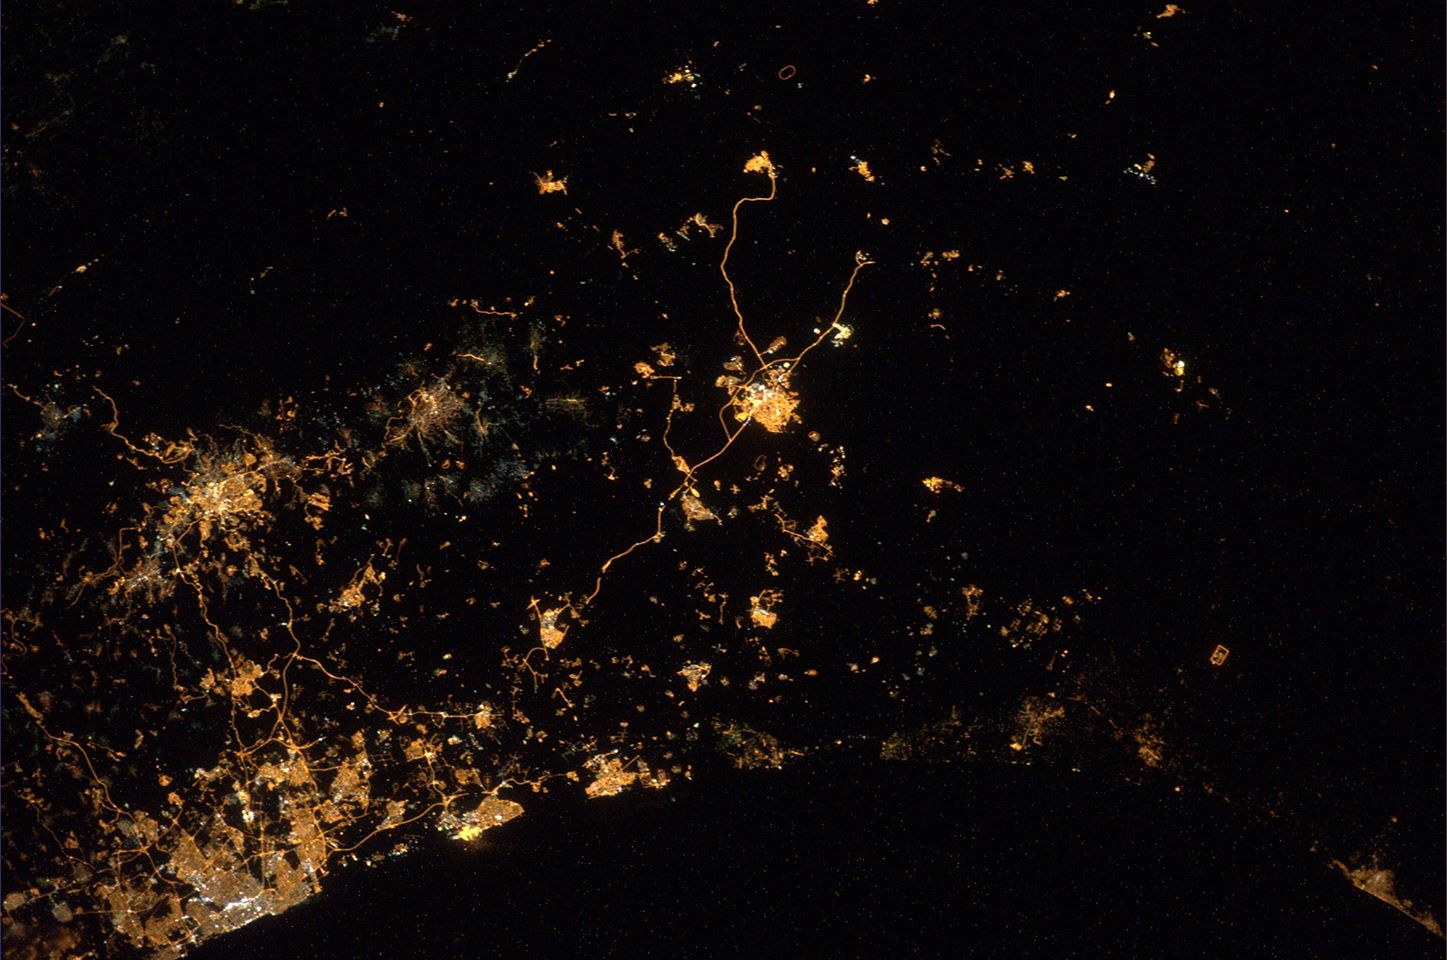 Astronaut Spots Explosions over Israel and Gaza from Space